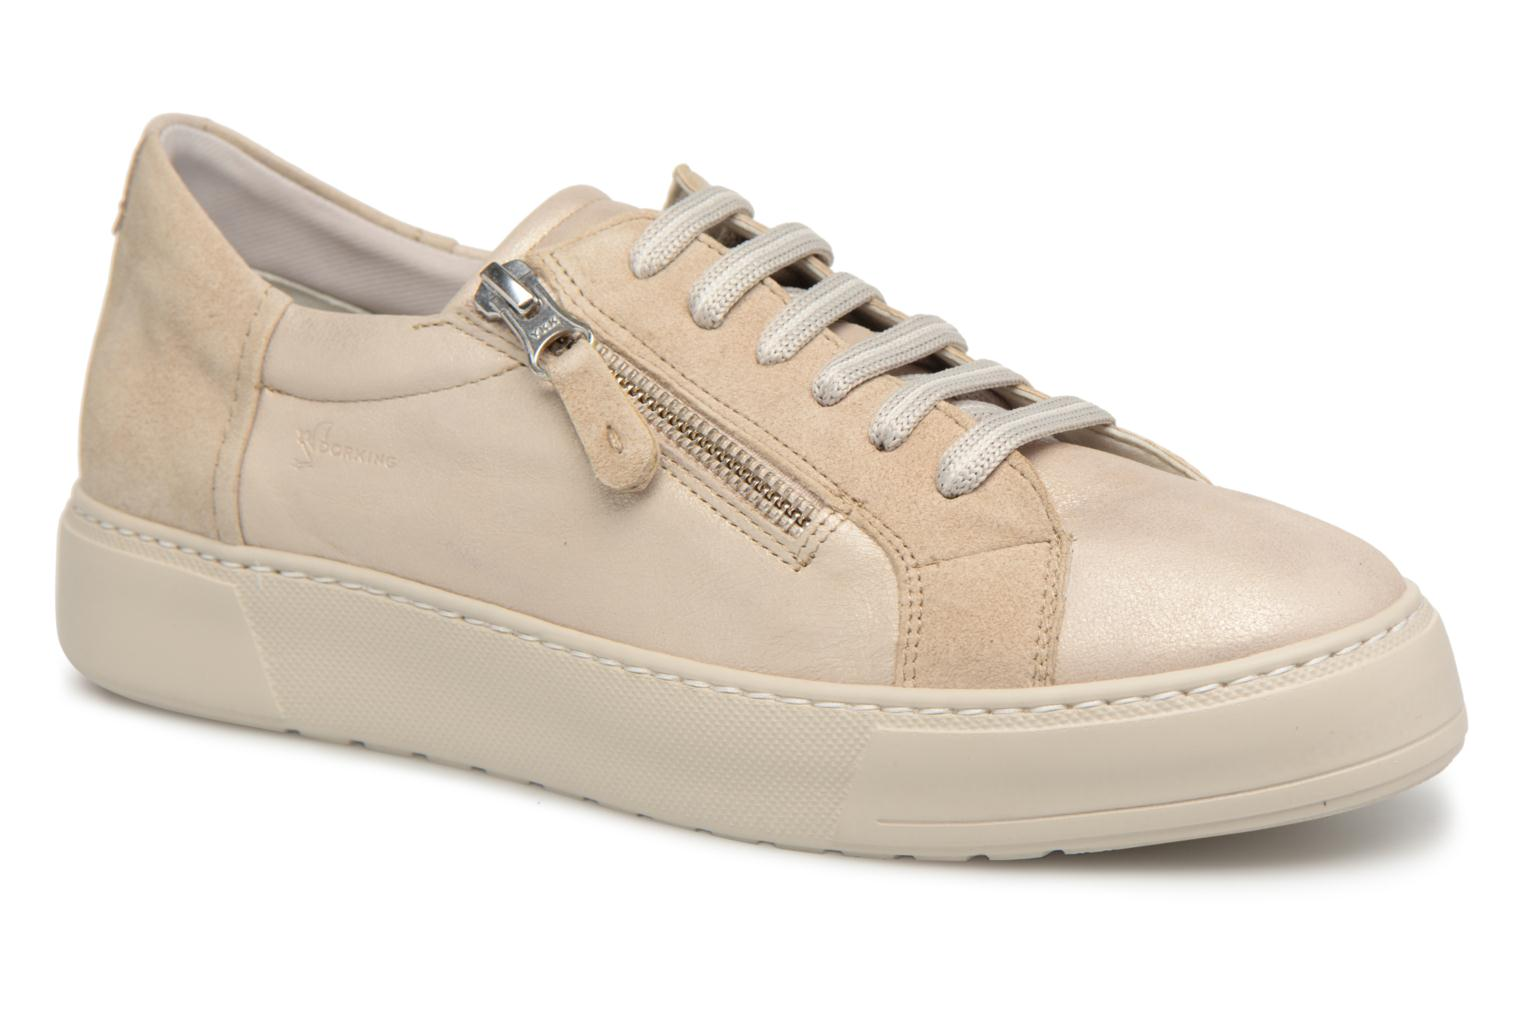 Marques Chaussure femme Dorking femme Bombay 7524 Natural